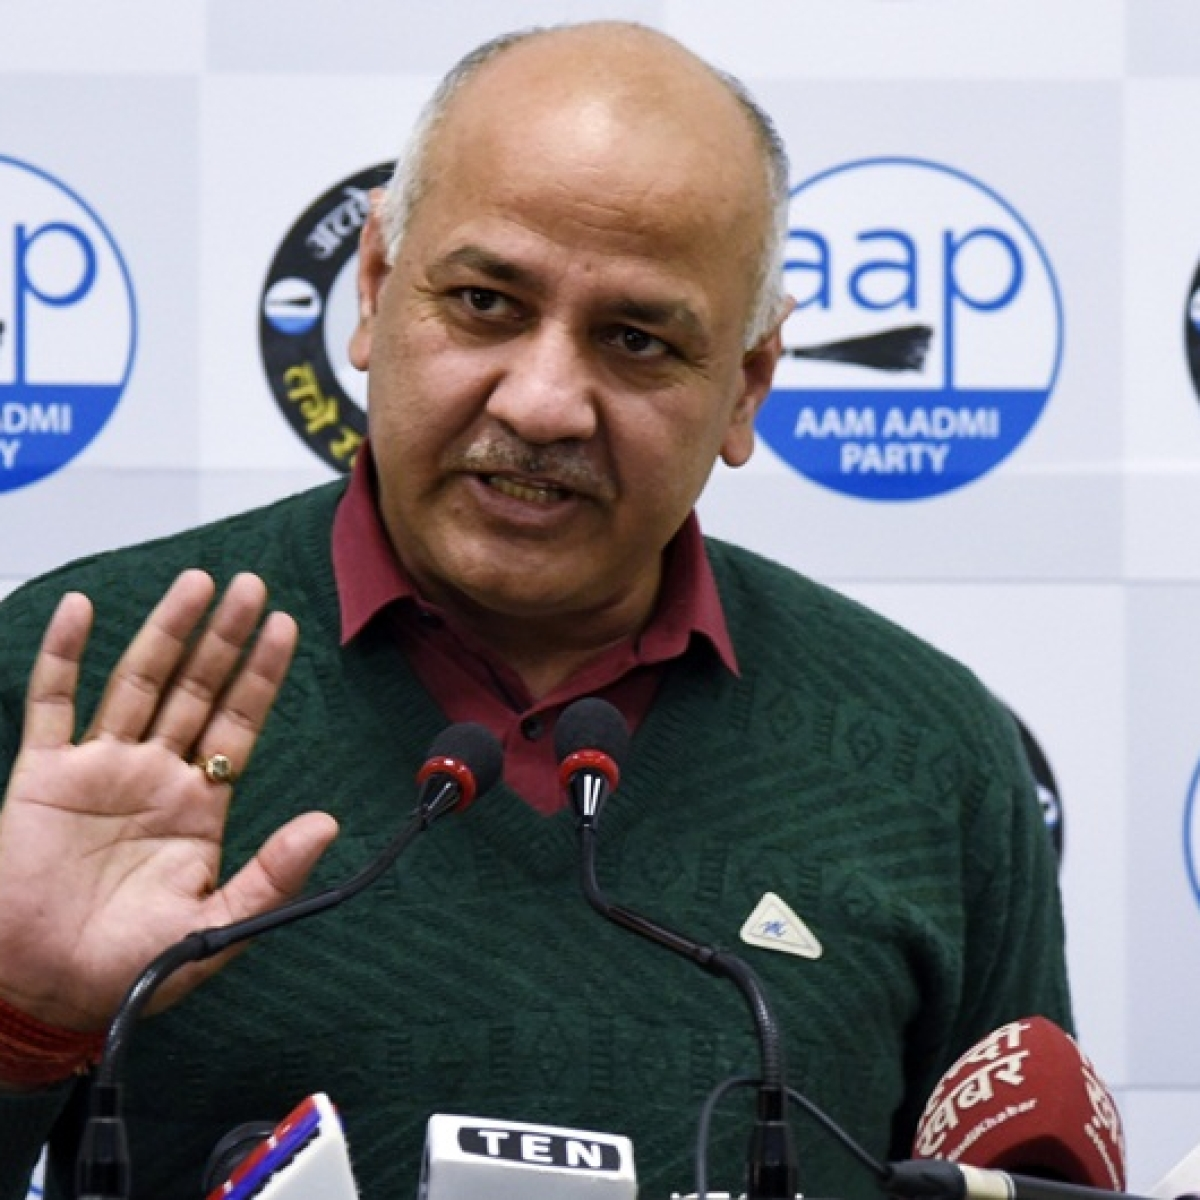 Delhi: Schools for Class 9, 11 students, colleges, diploma institutions to reopen from Feb 5